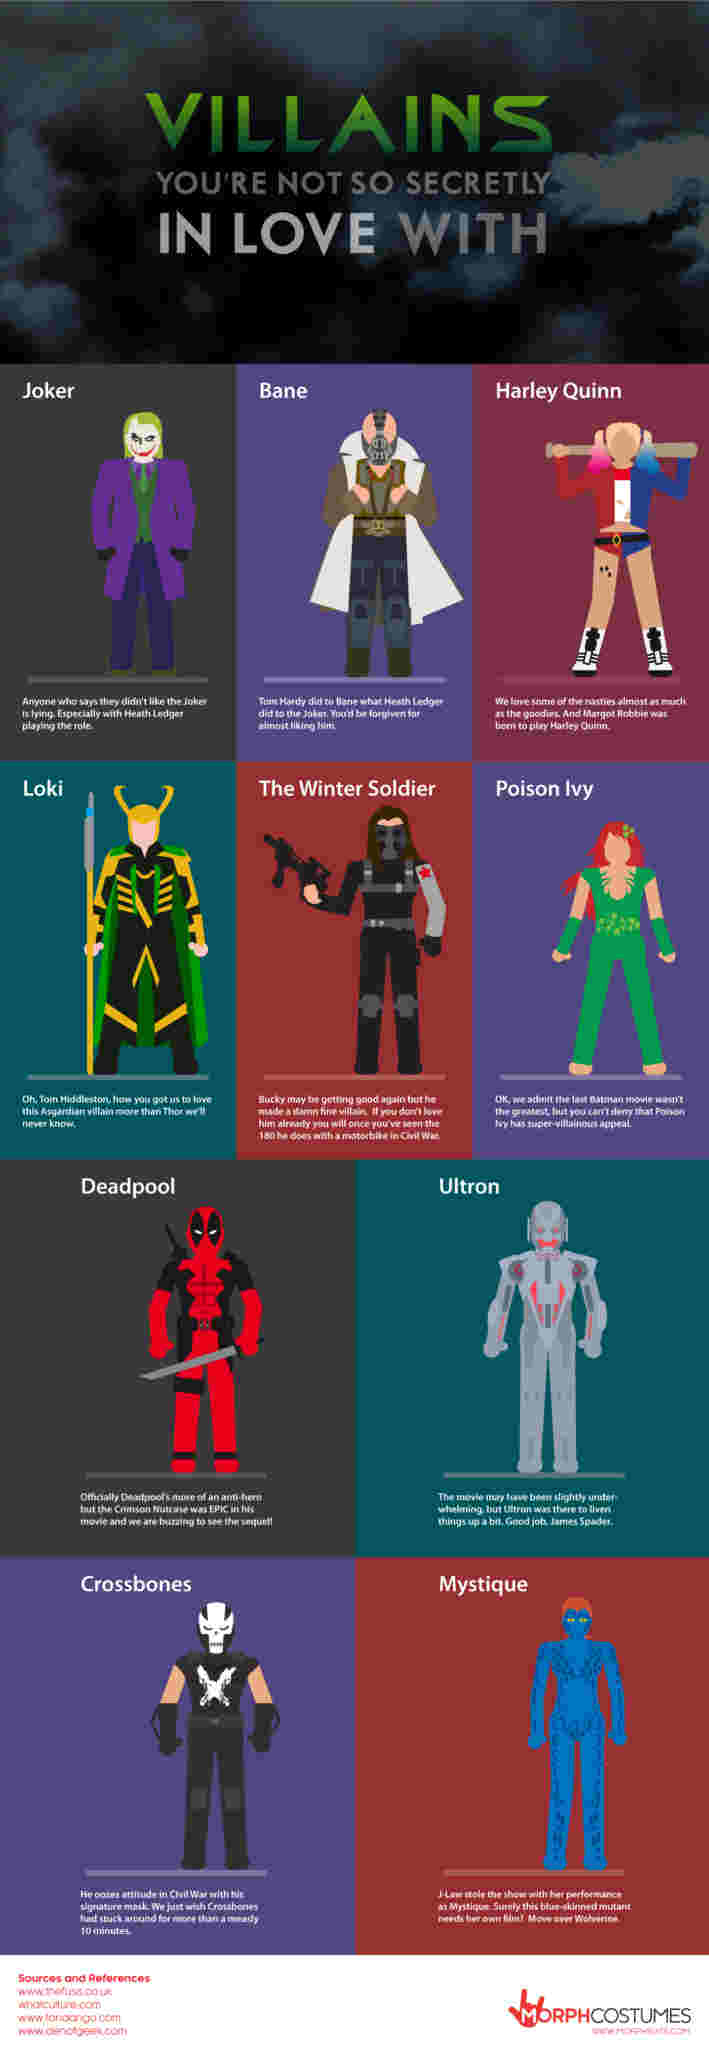 Villains-You're-Not-So-Secretly-In-Love-With-Infographic-1